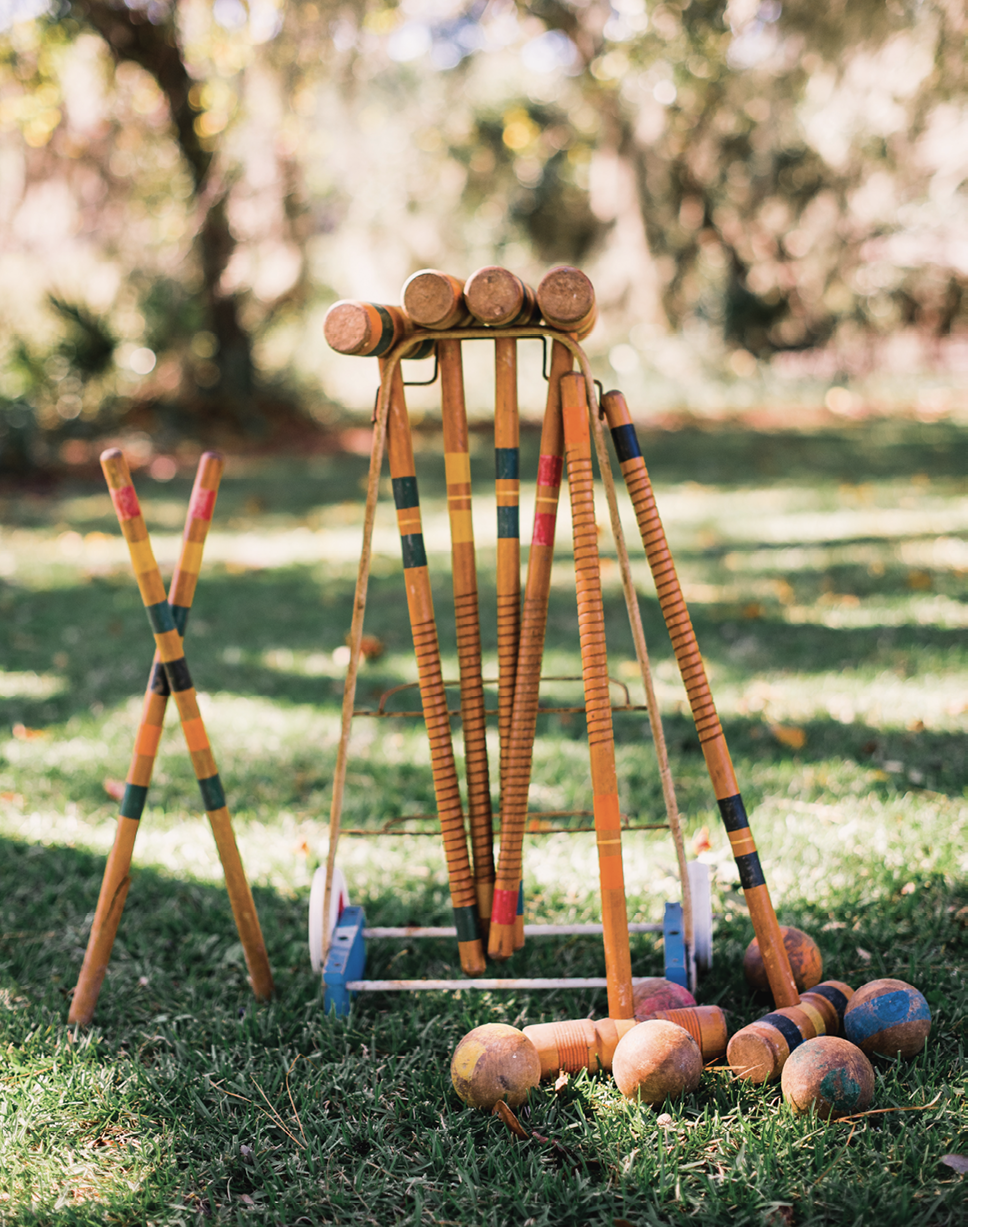 ...play croquet while staying distanced.